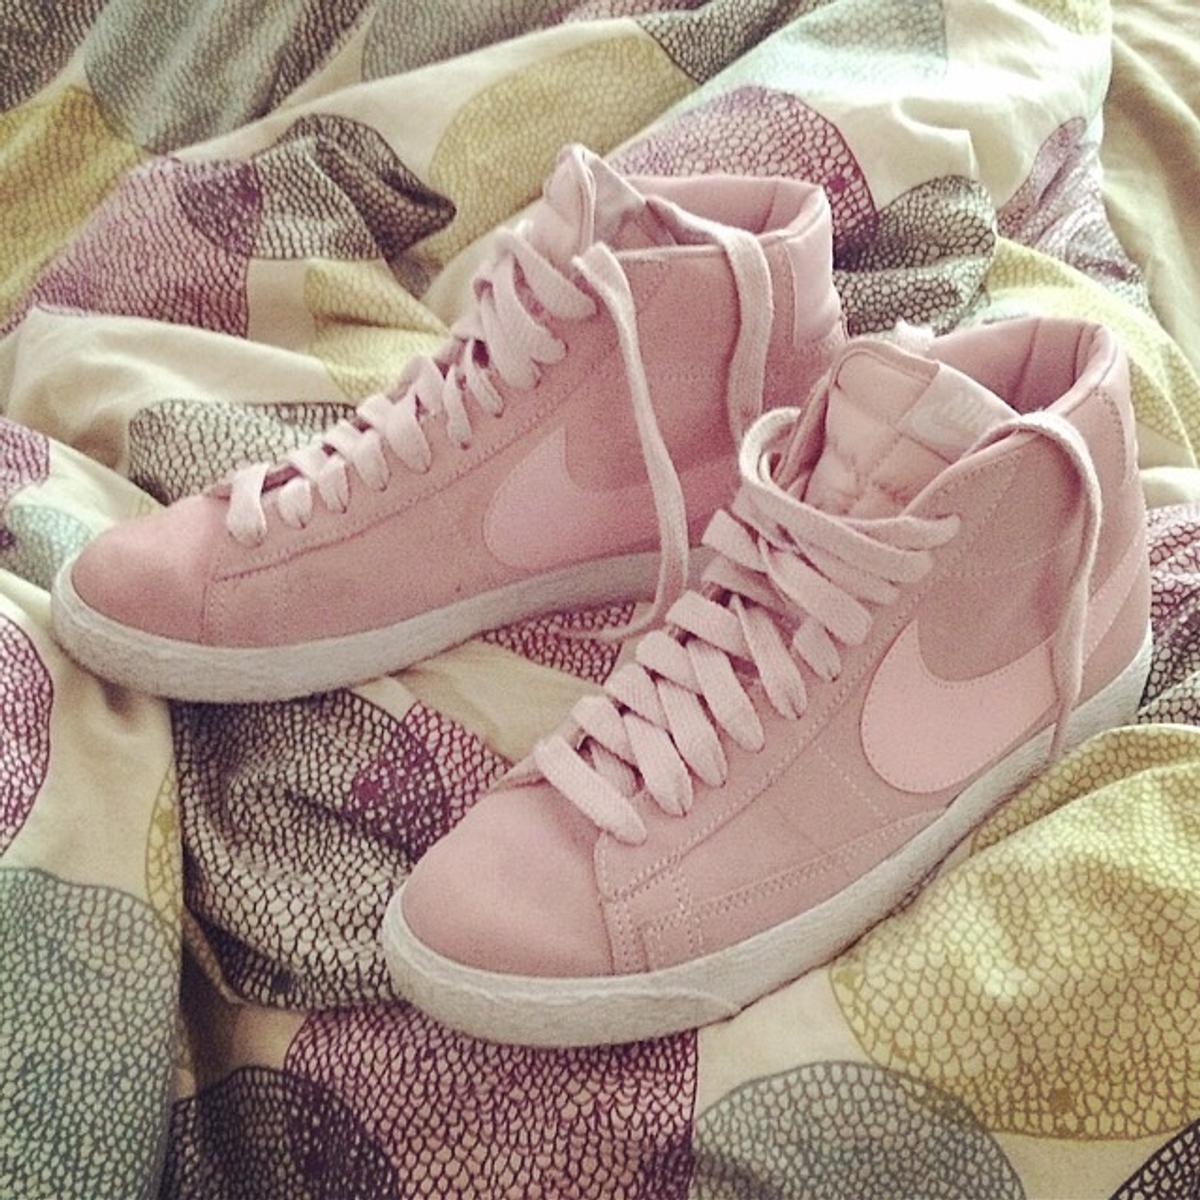 finest selection 3591d 30a40 Super coole pastell-rosa Nike Sneaker! in 06844 Dessau ...